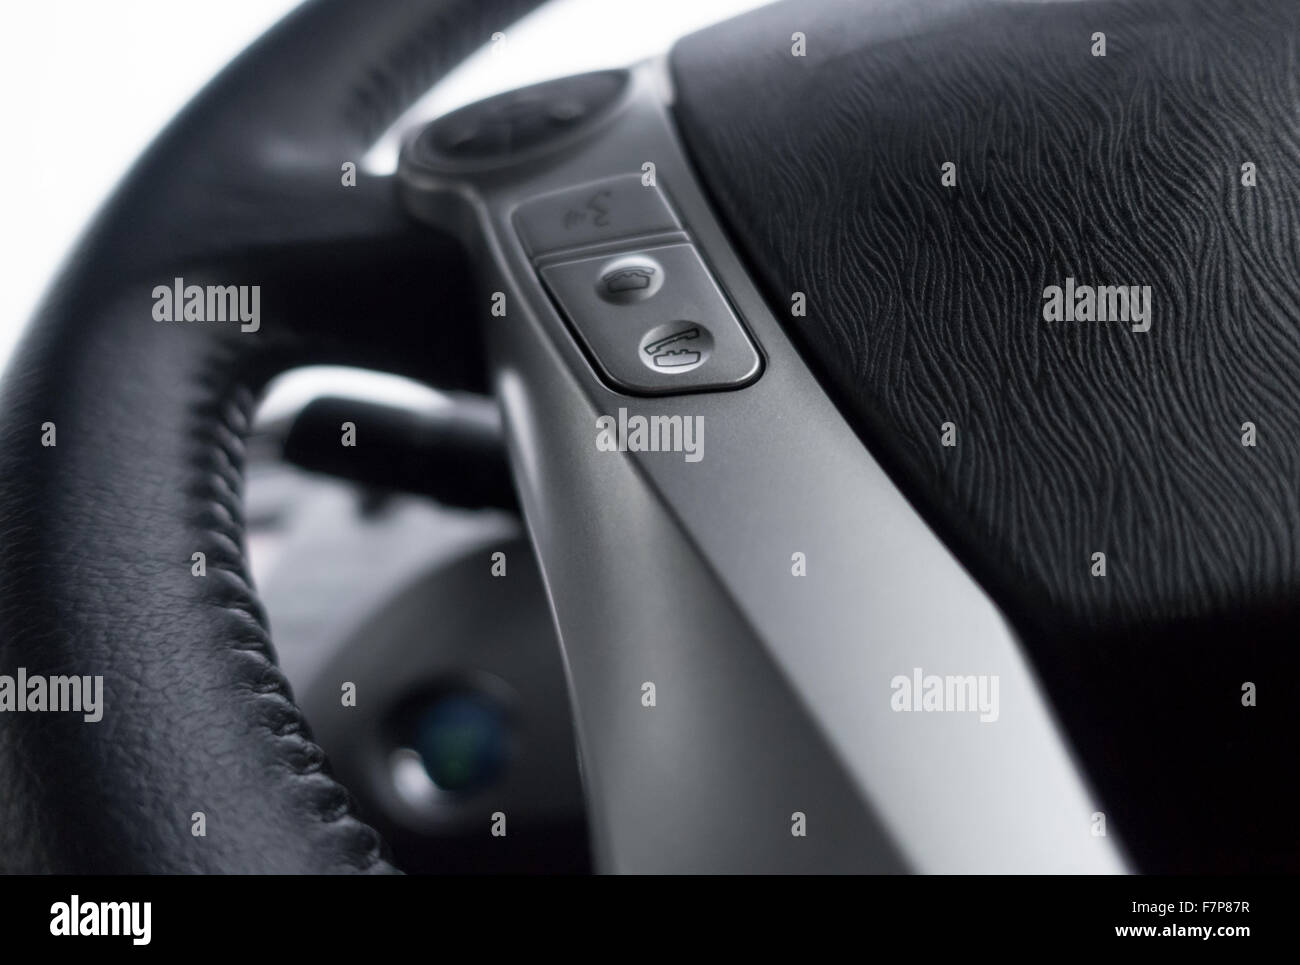 Steering wheel of a Toyota Prius with hands free button - Stock Image